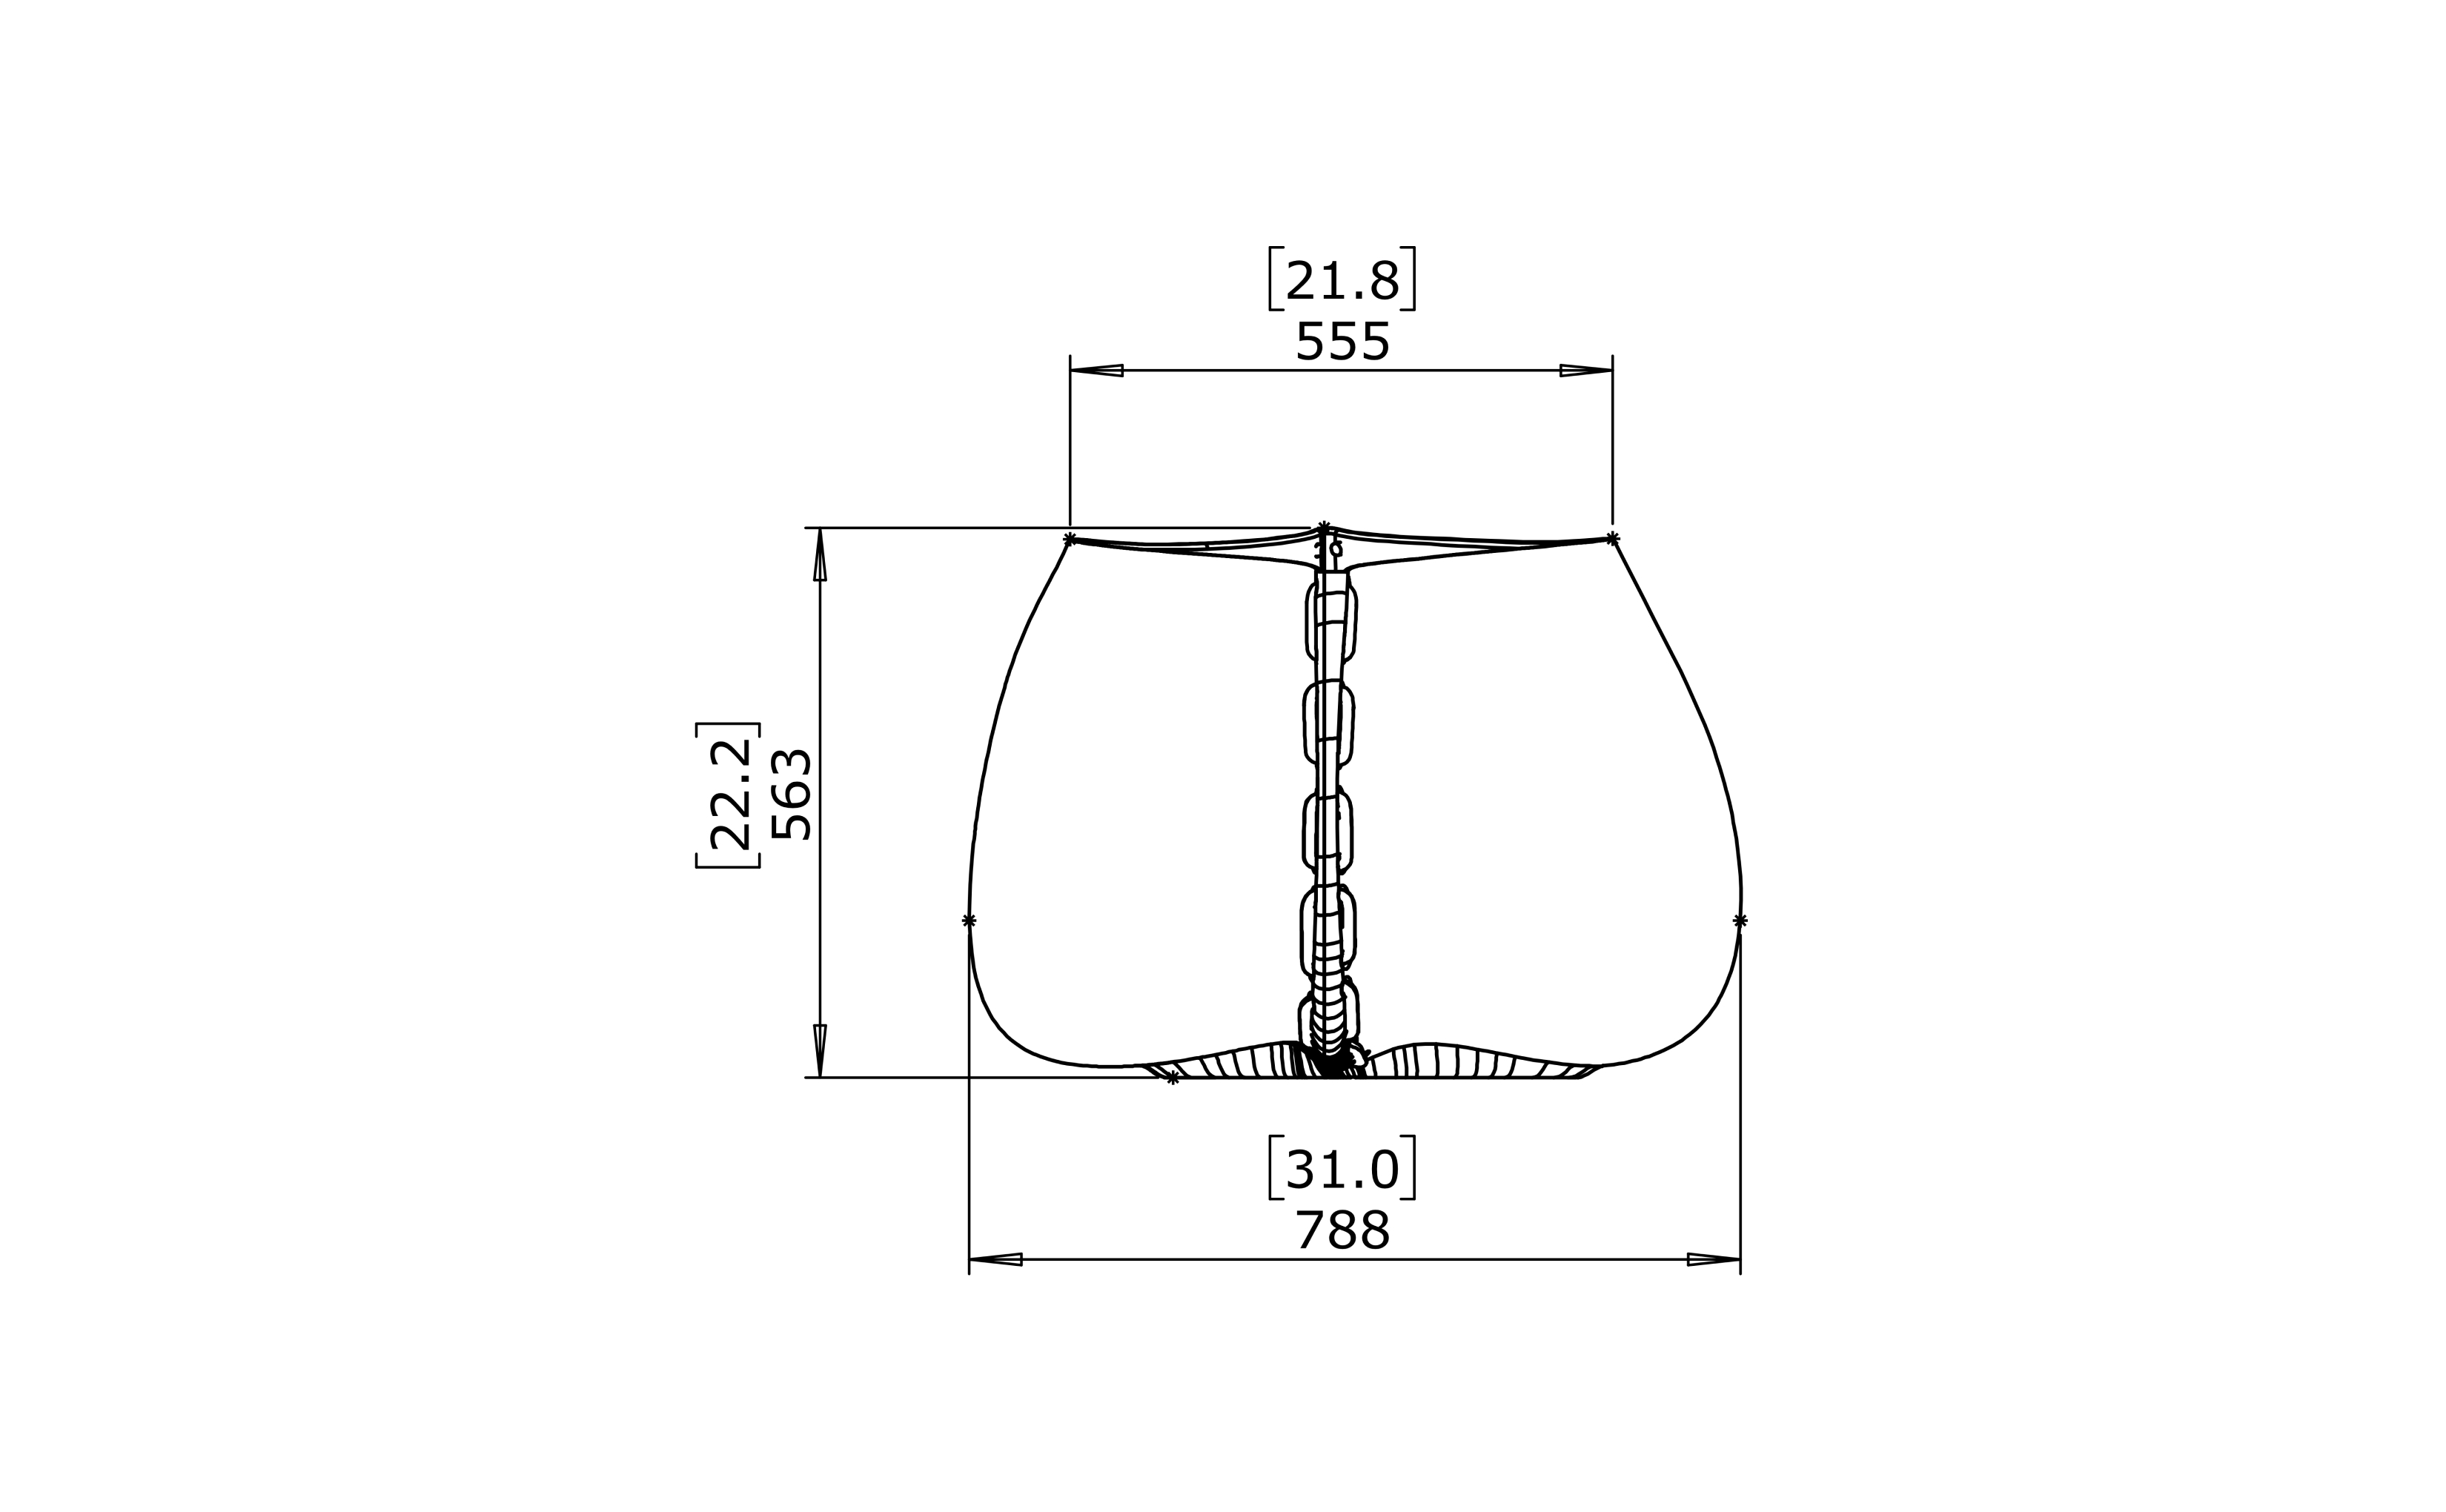 stitch-50-bld.1.p.sti.50-side-view-technical-drawing-by-blinde-design.jpg